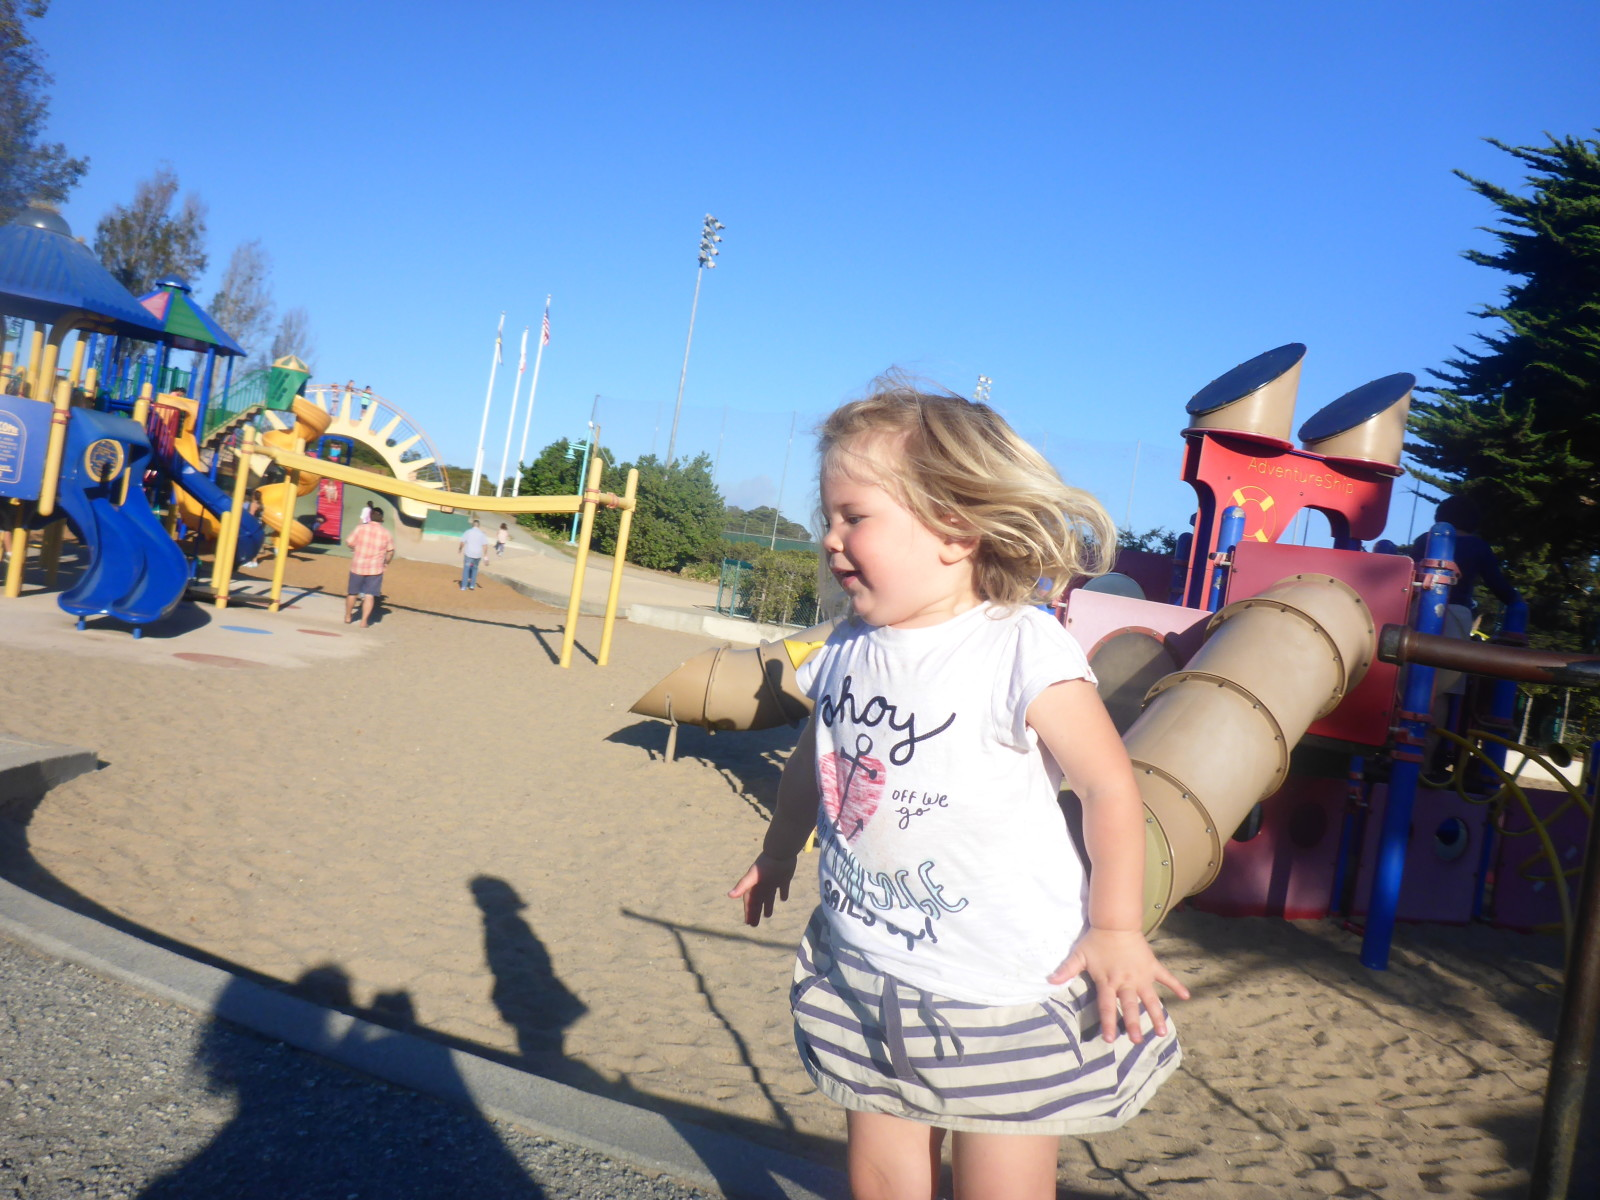 Great playground - she didn't stop moving